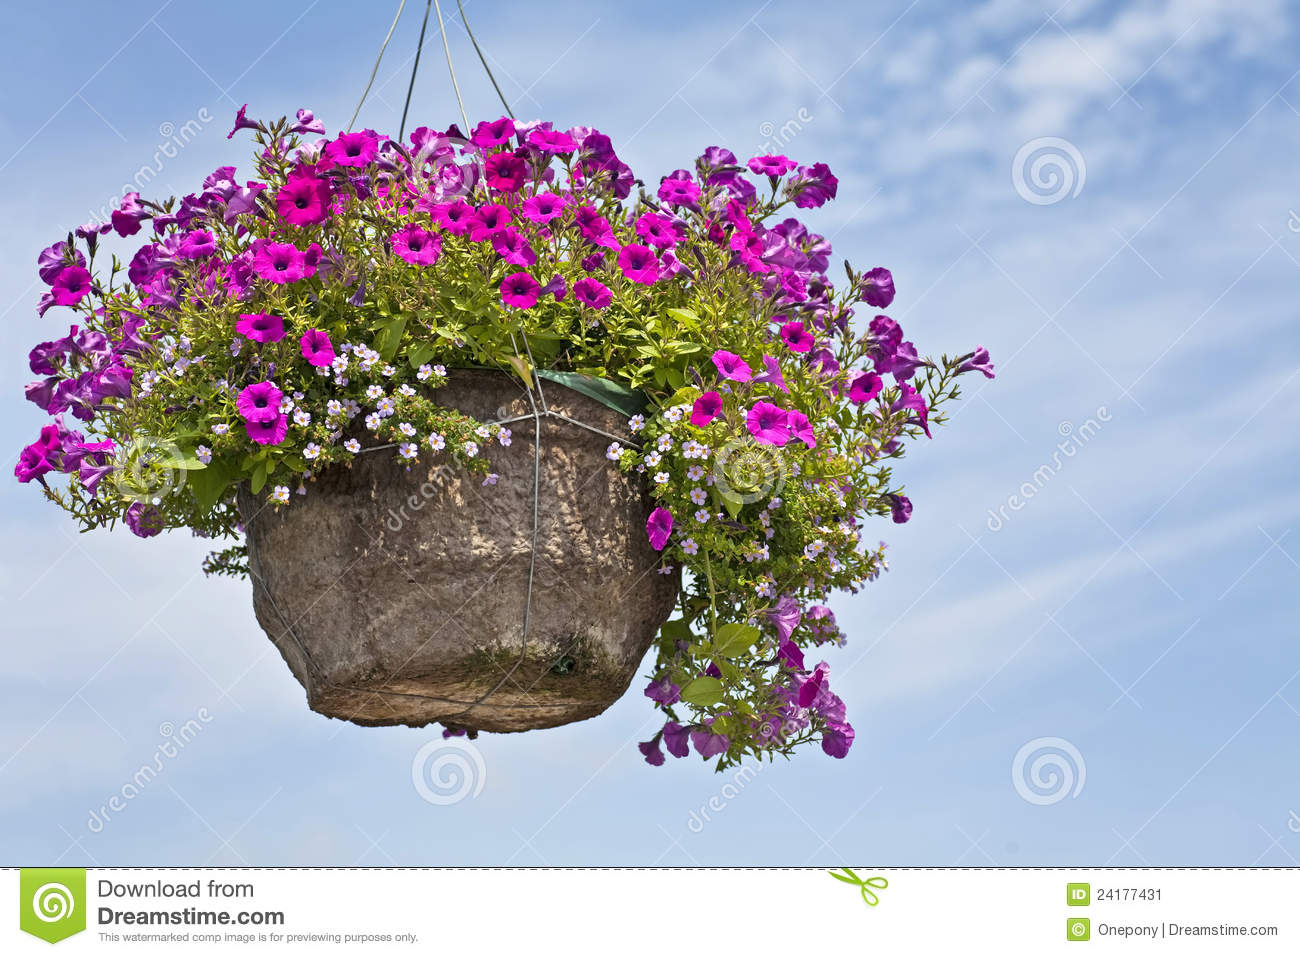 Petunia Hanging Basket Stock Photos, Images, & Pictures - 771 Images